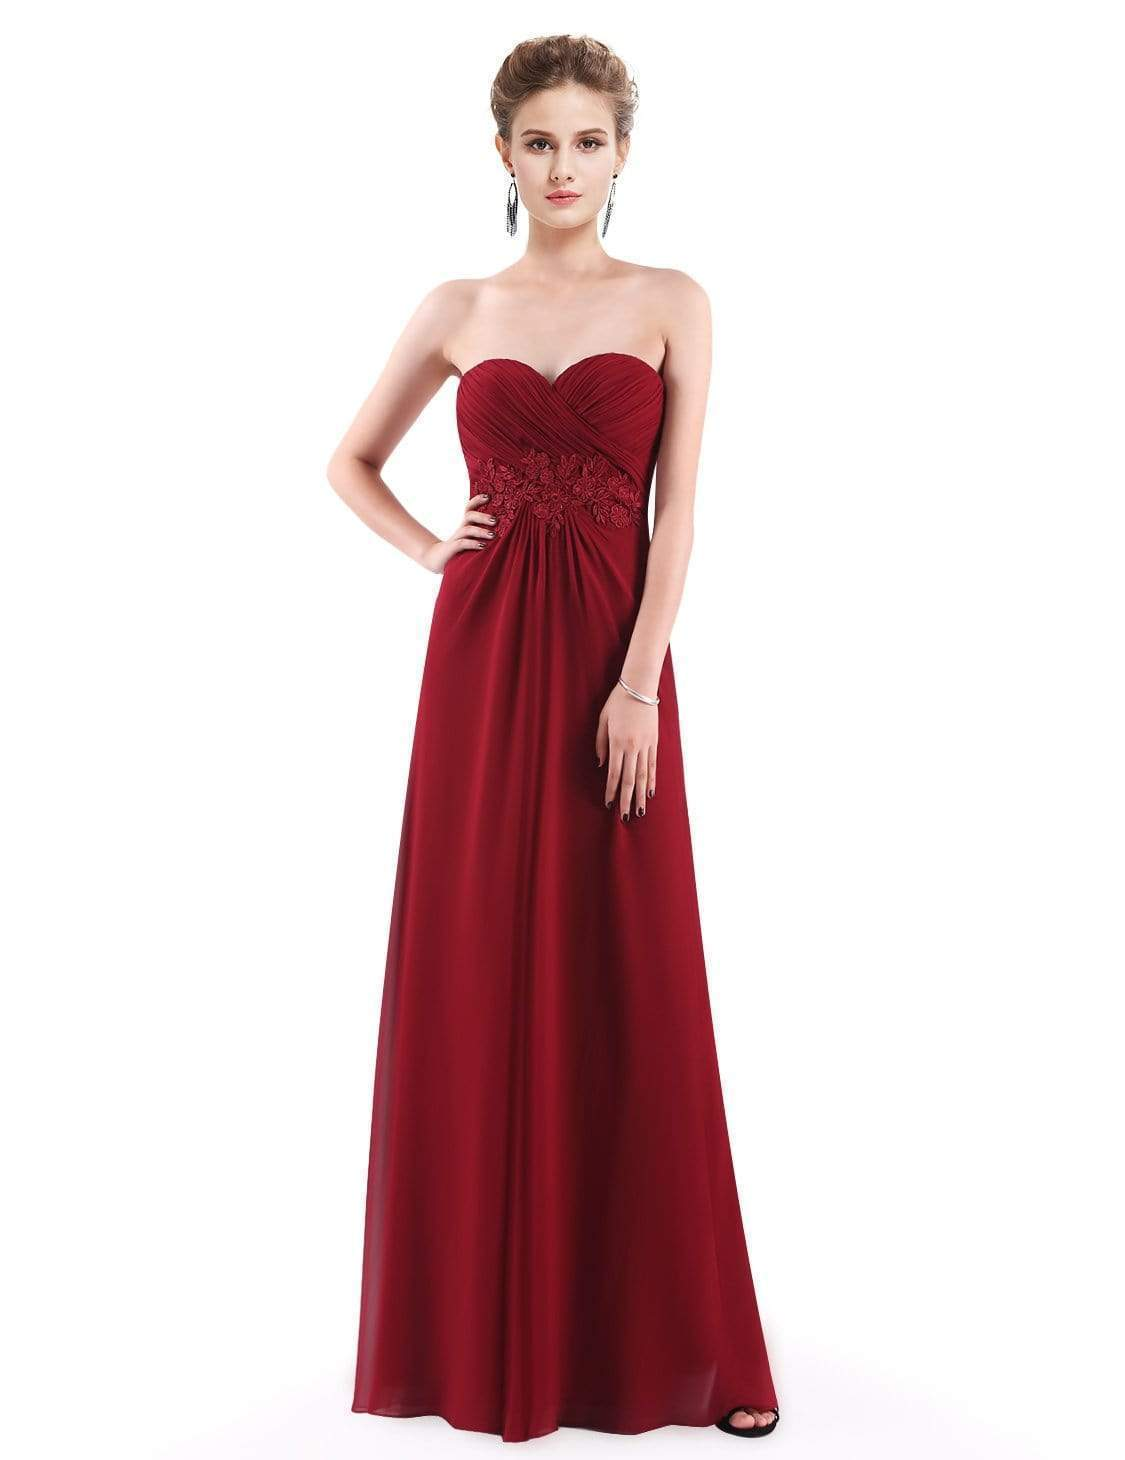 773a9c376a0 Strapless Long Evening Dress with Sweetheart Neckline